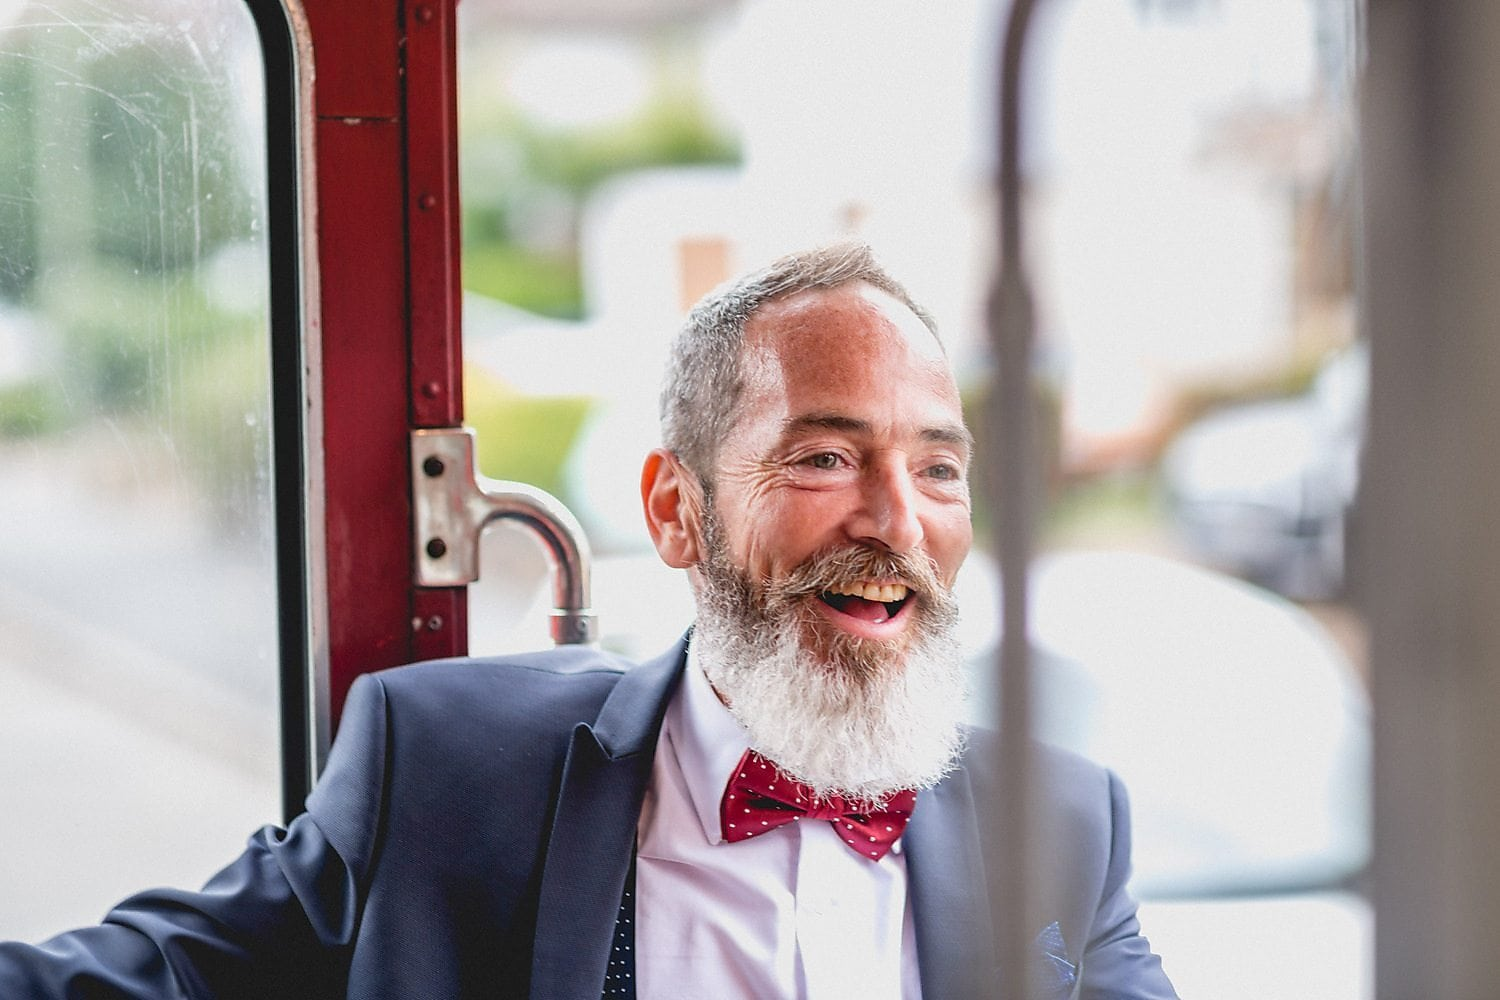 A male guest with red spotty bow tie laughs on board the wedding bus